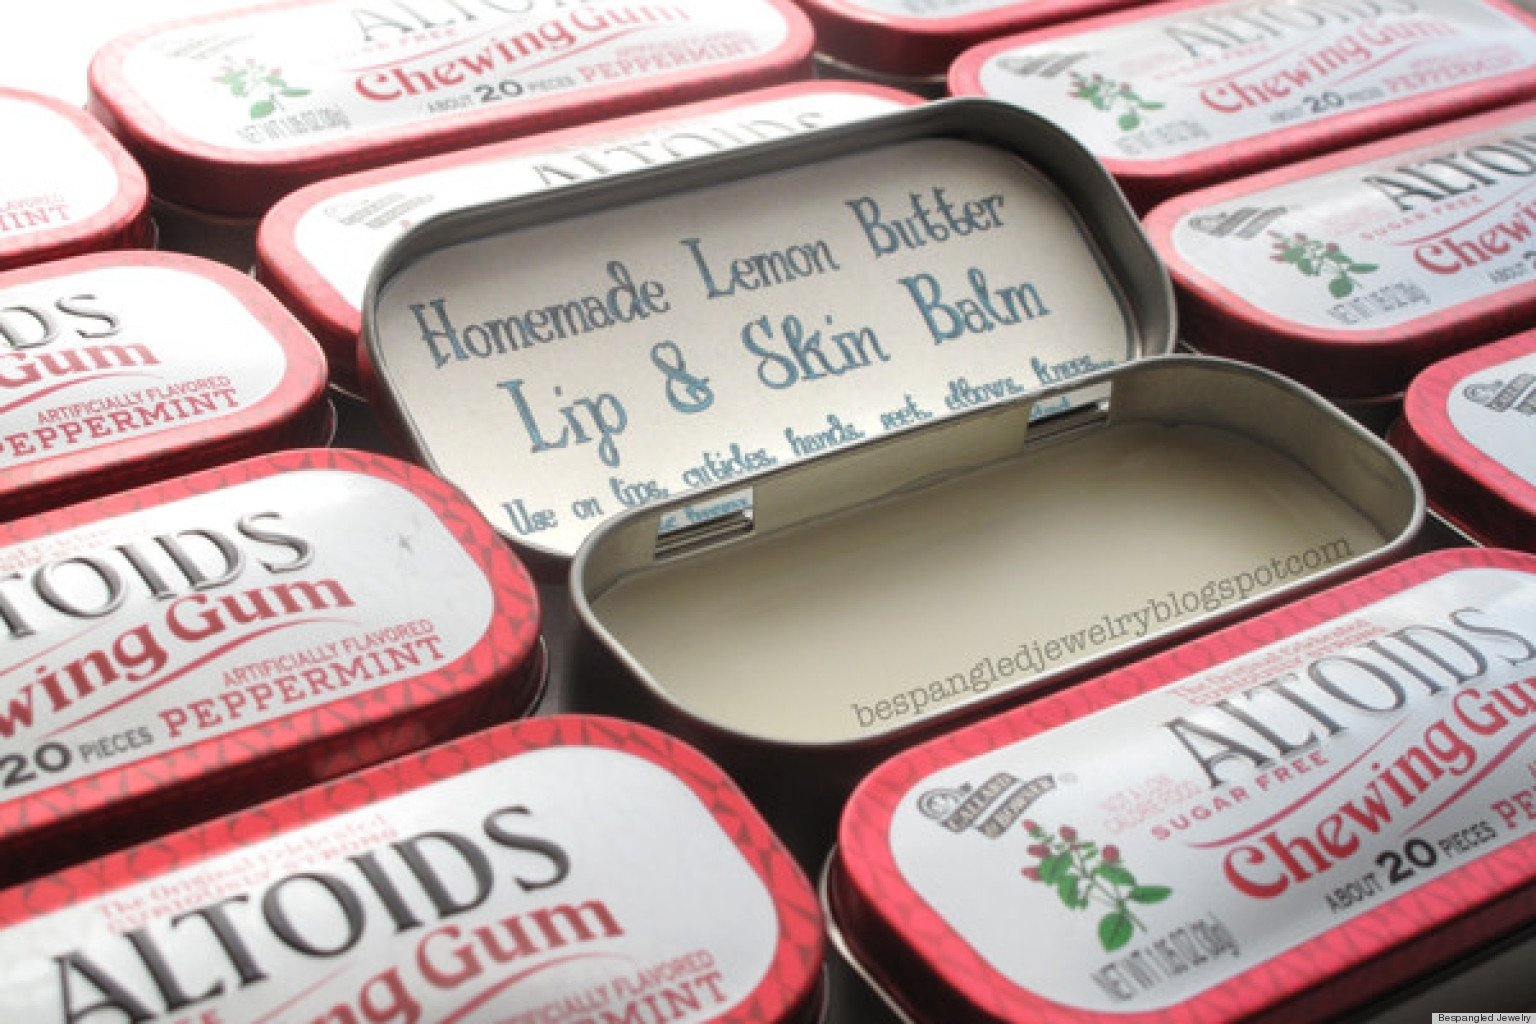 10 Awesome Good Ideas For Valentines Day valentines day gift ideas a diy lemon lip balm made in an altoid 2 2020